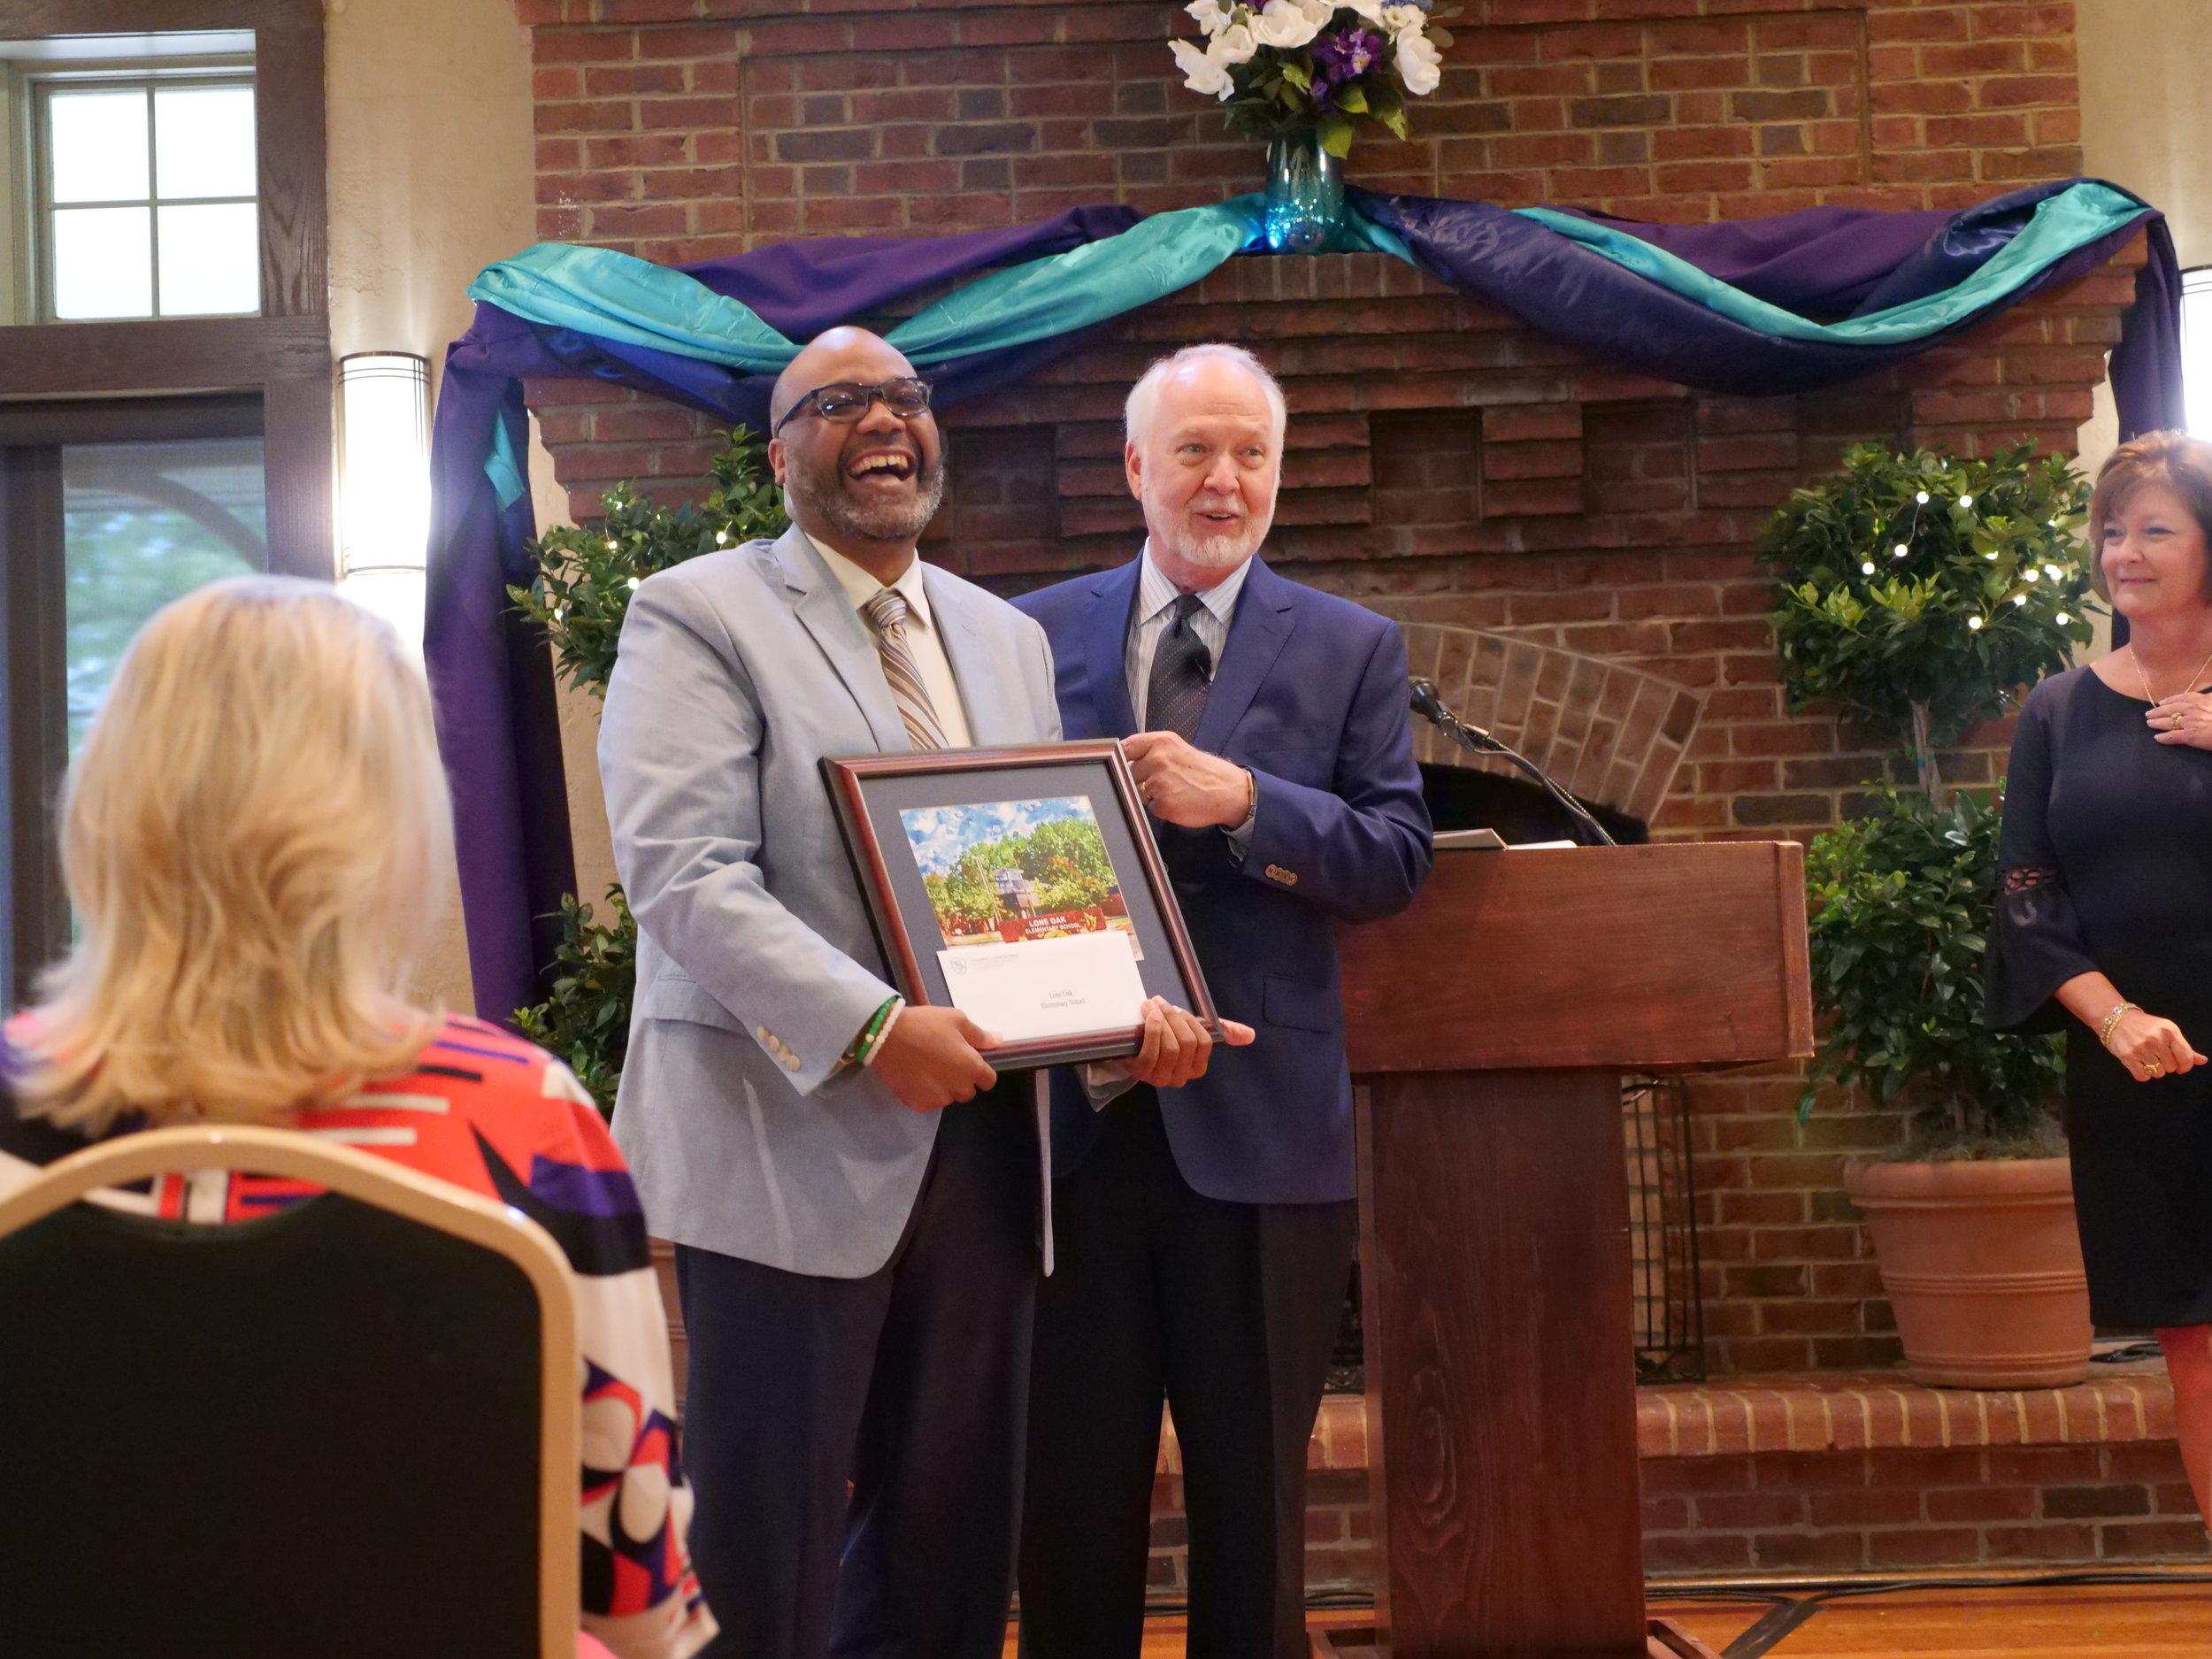 Keith Burton, Principal receives the Wardlaw Pioneer Award for Lone Oak Elementary School, an award which included $5,000, in recognition Continuous Improvement work at the District 6 School.